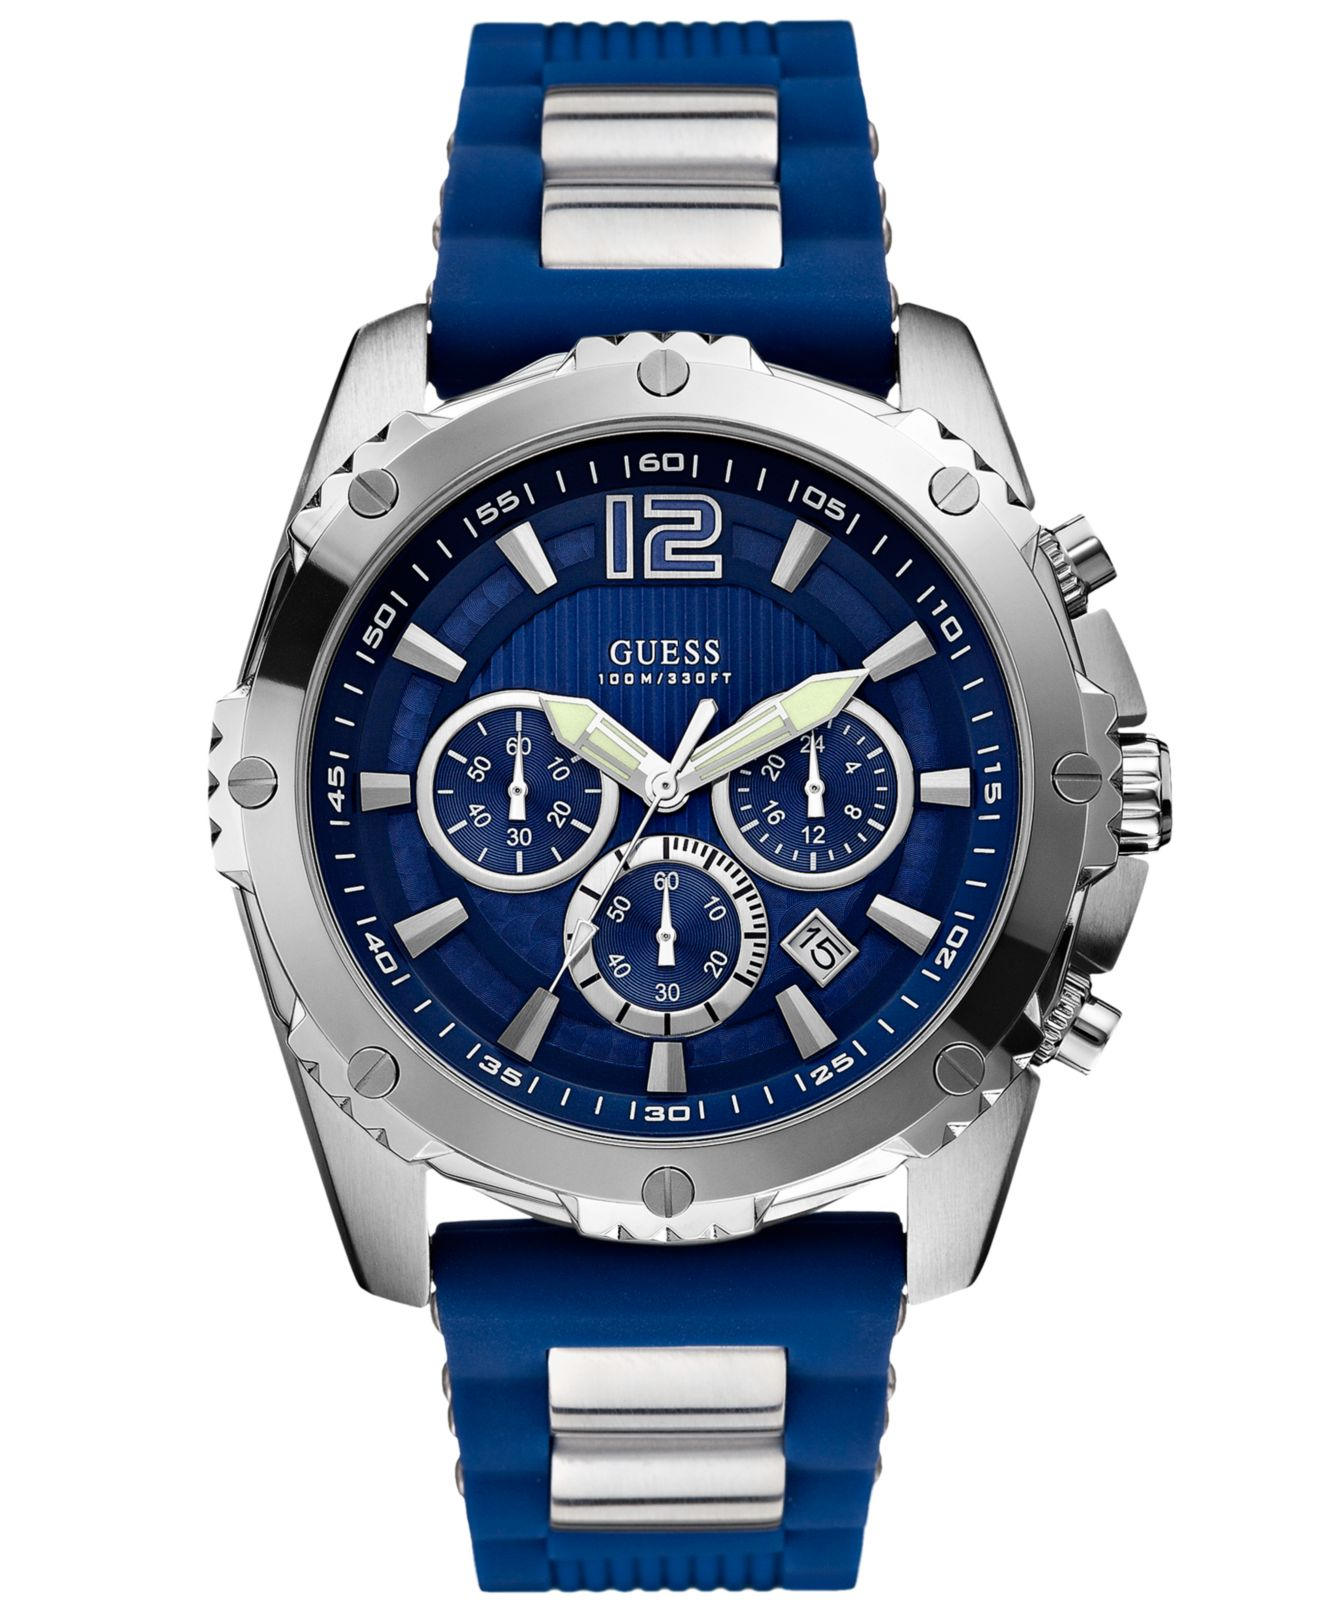 guess watch mens chronograph steel and blue silicone strap